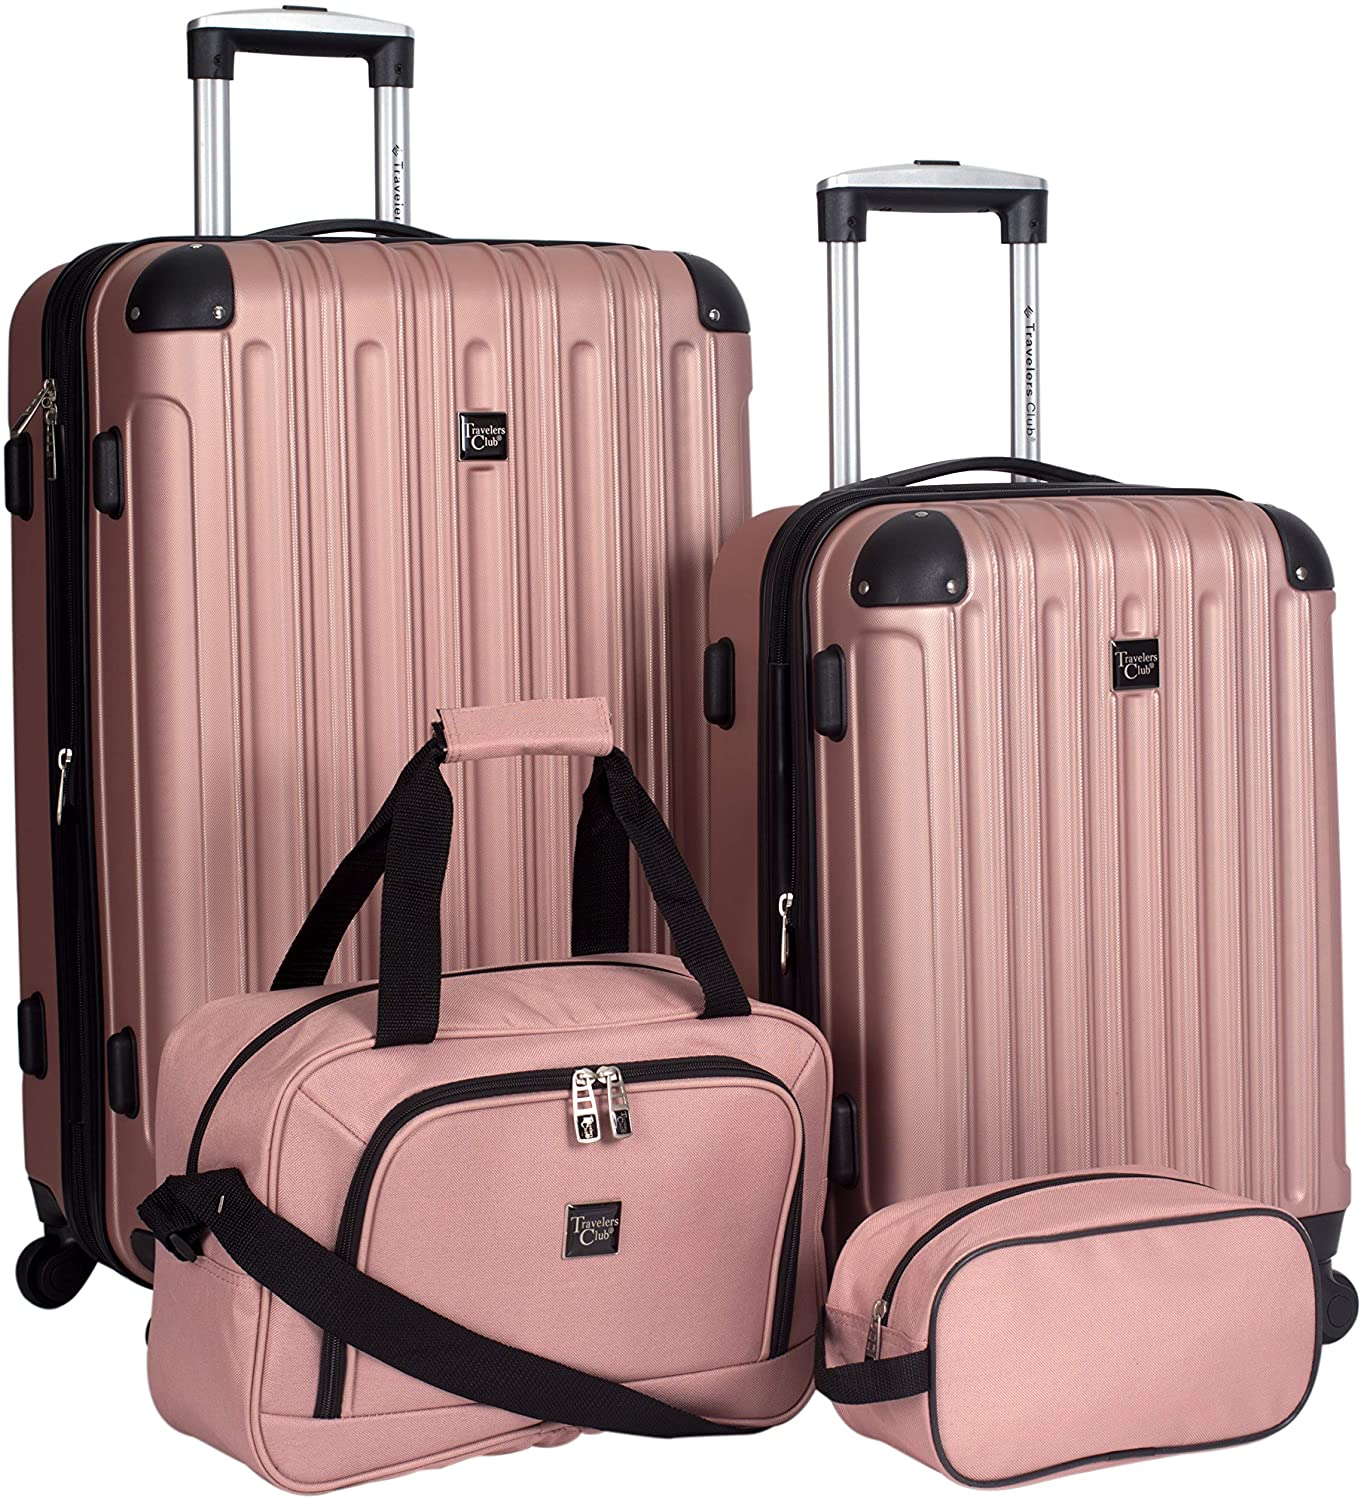 Travelers Club Midtown Hard Shell Suitcase, 4-Piece